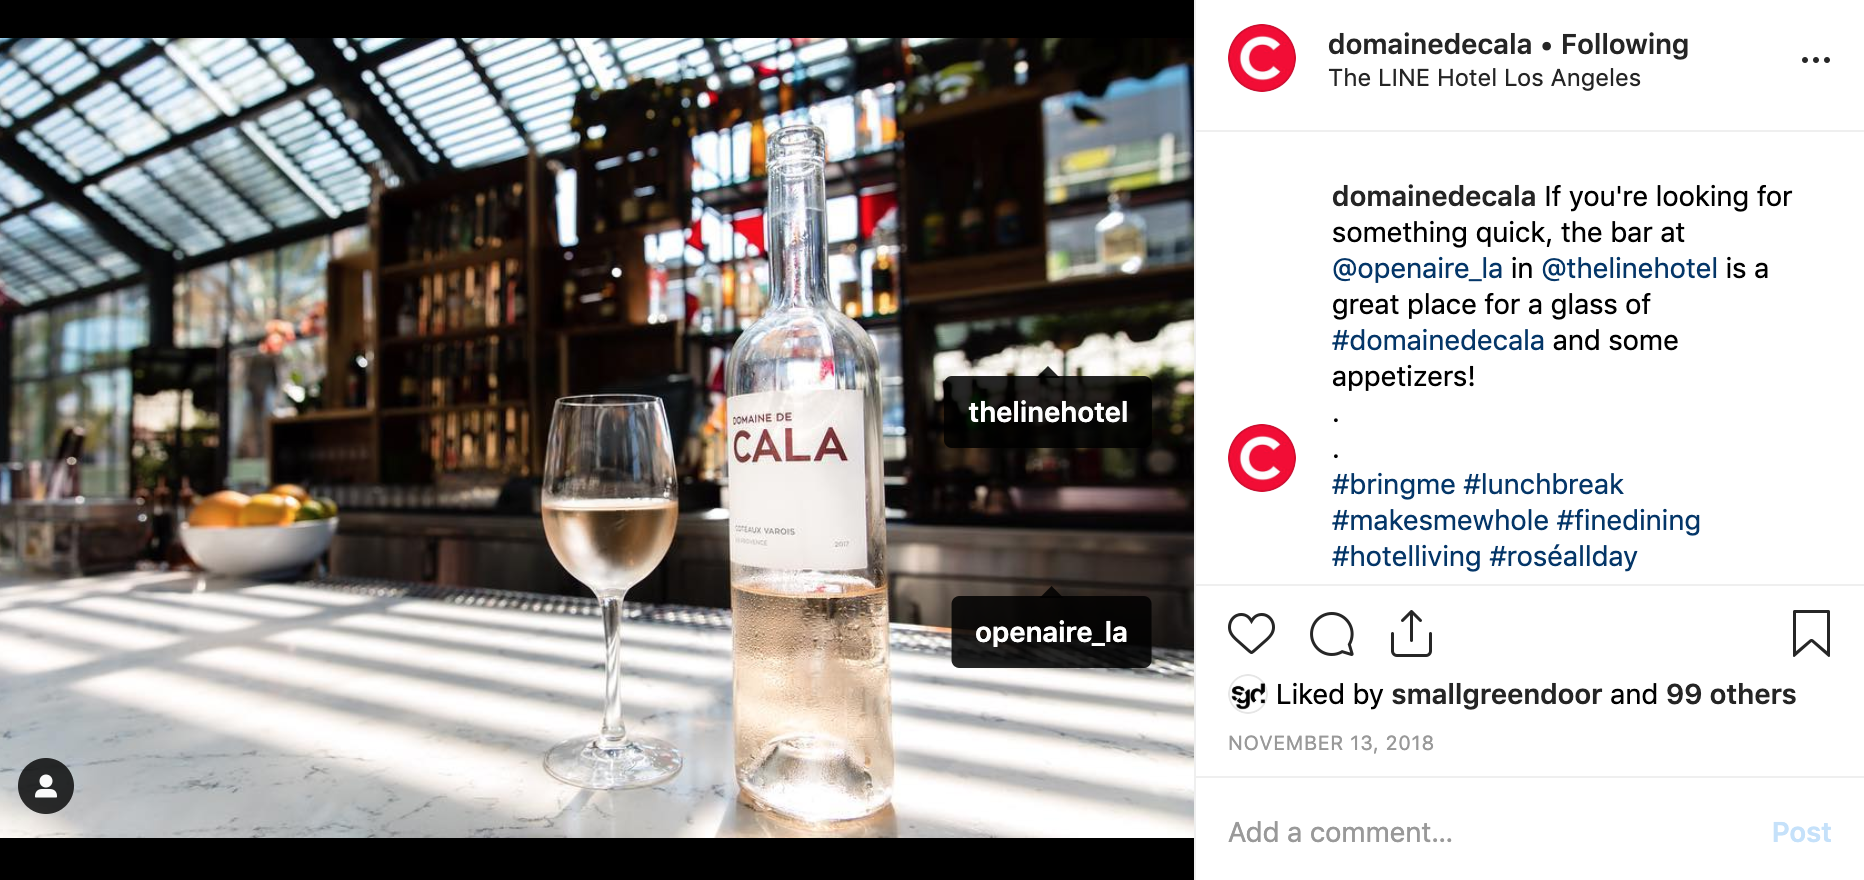 captions, hashtags, and location scouting - Creating dynamic captions for CALA and the restaurants currently serving their product.